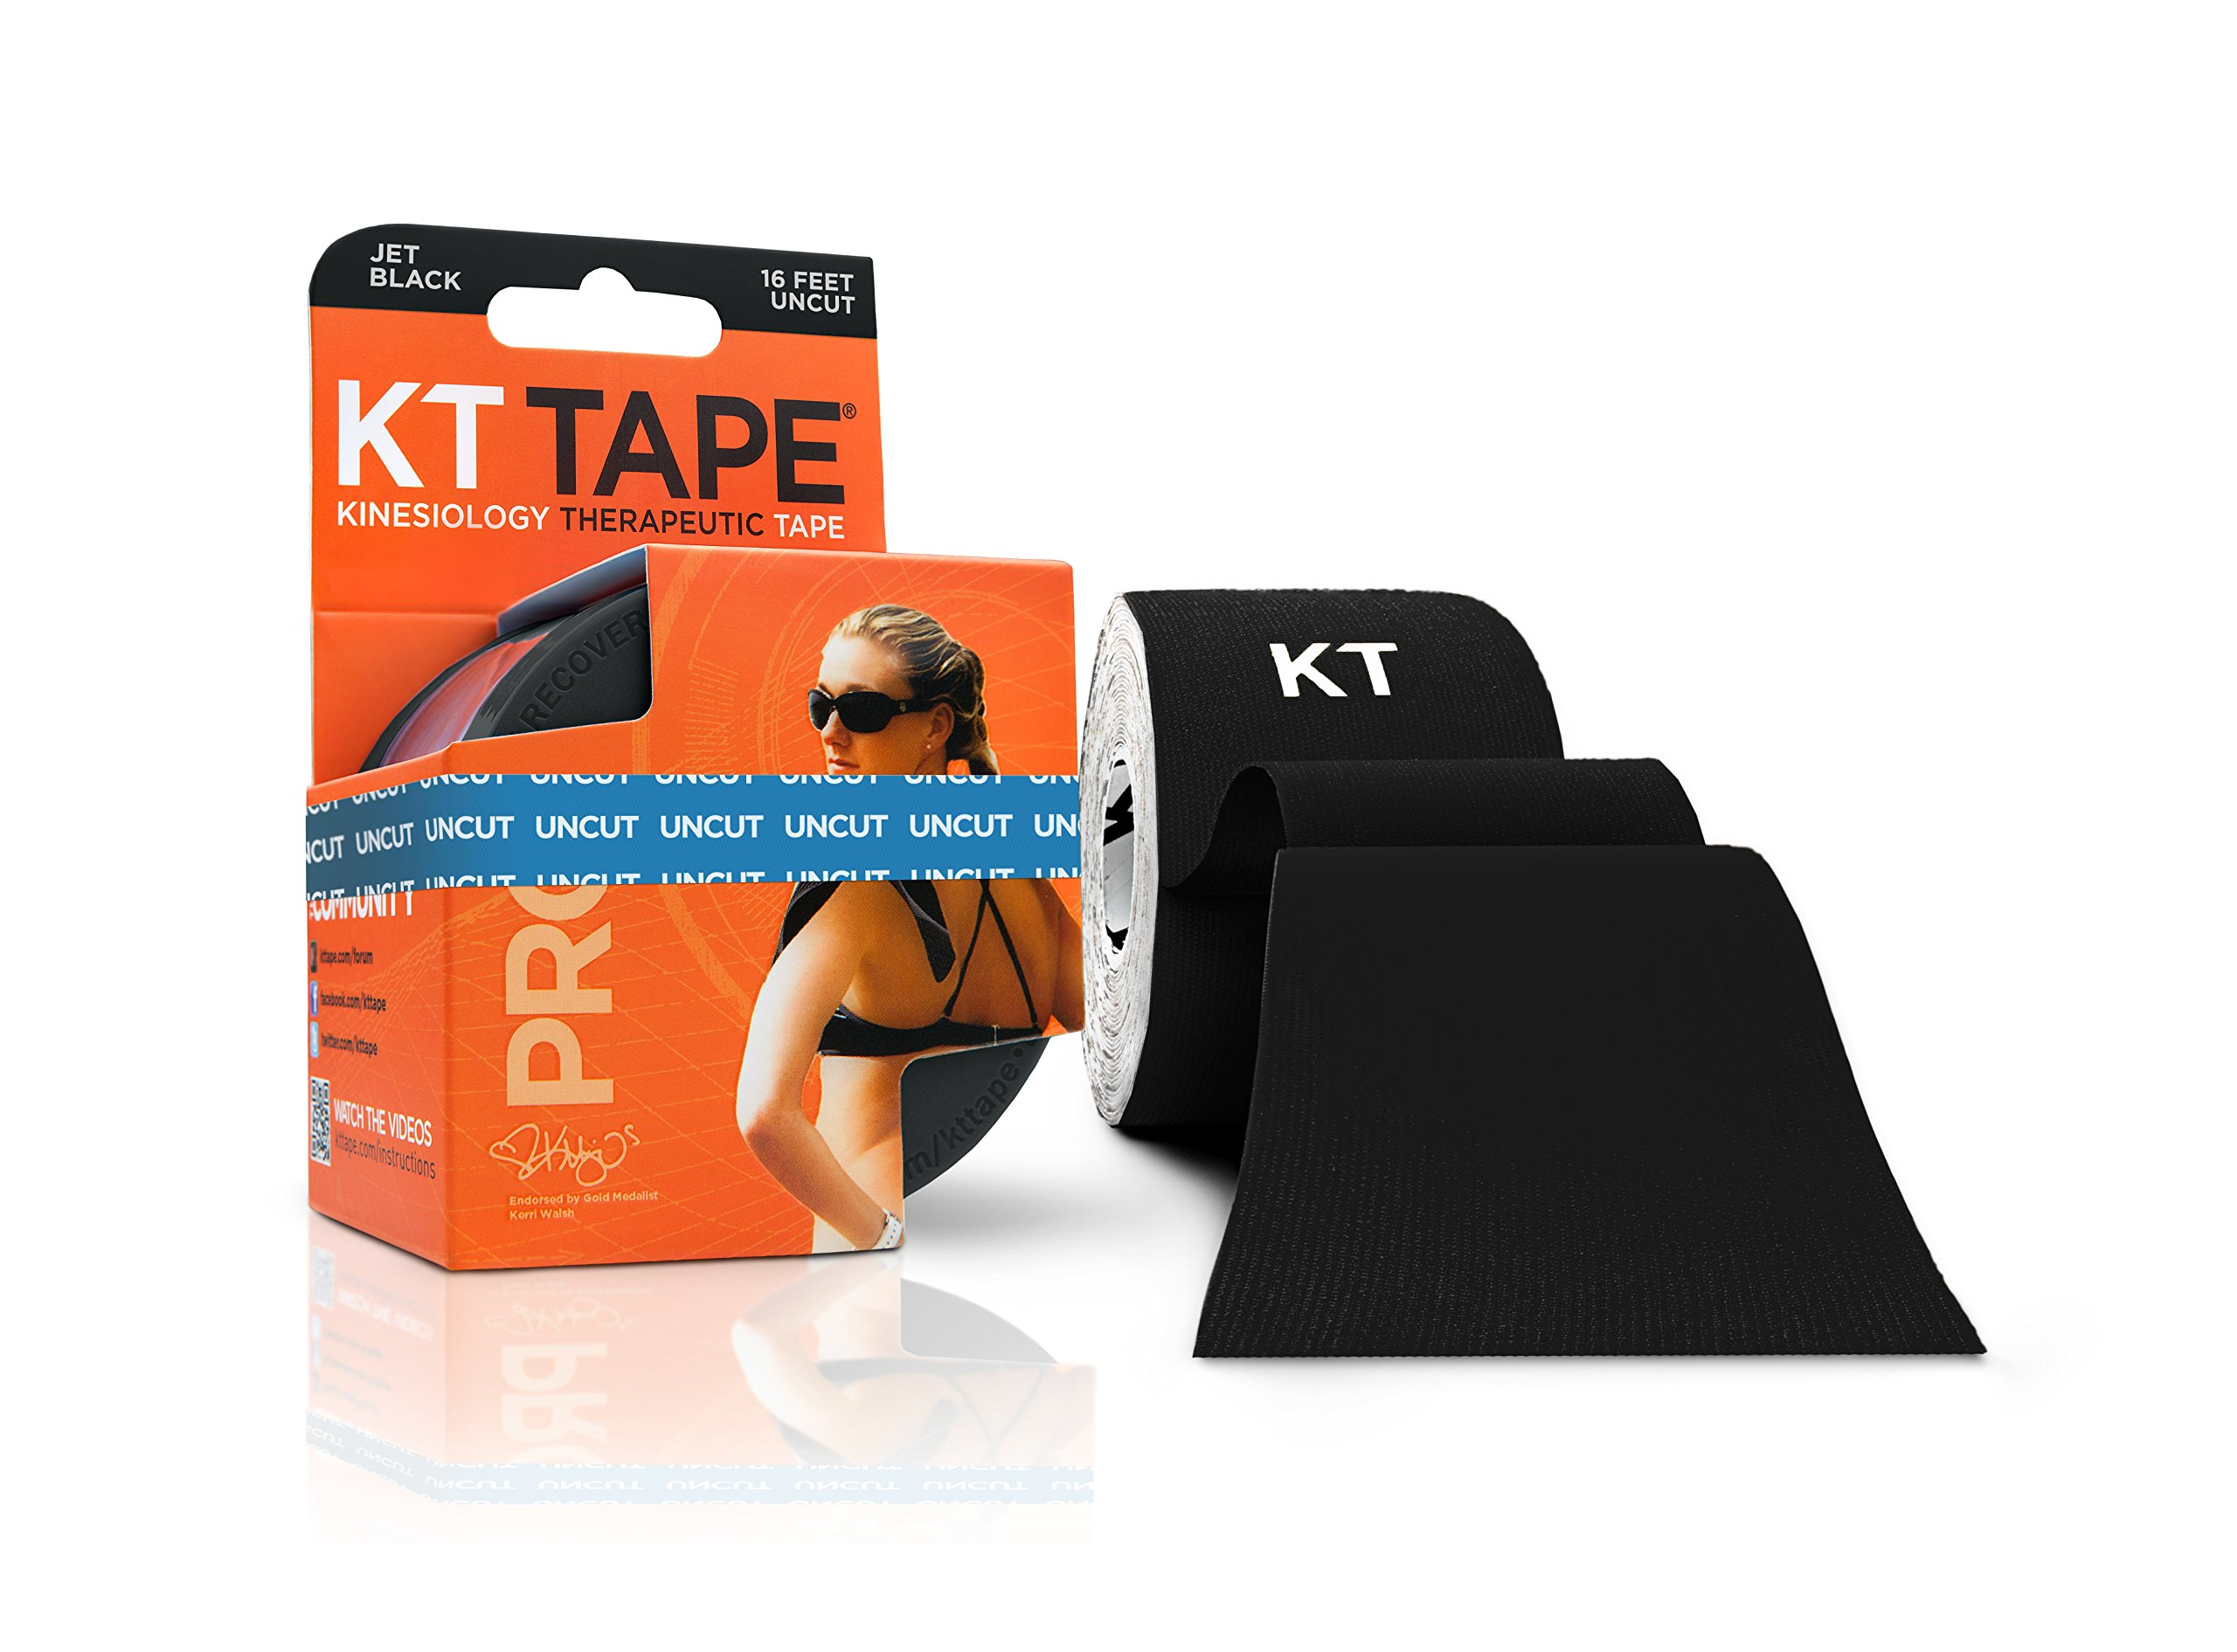 KT Tape PRO Synthetic Elastic Kinesiology Therapeutic Tape, 16.6 Foot Uncut Roll, Black